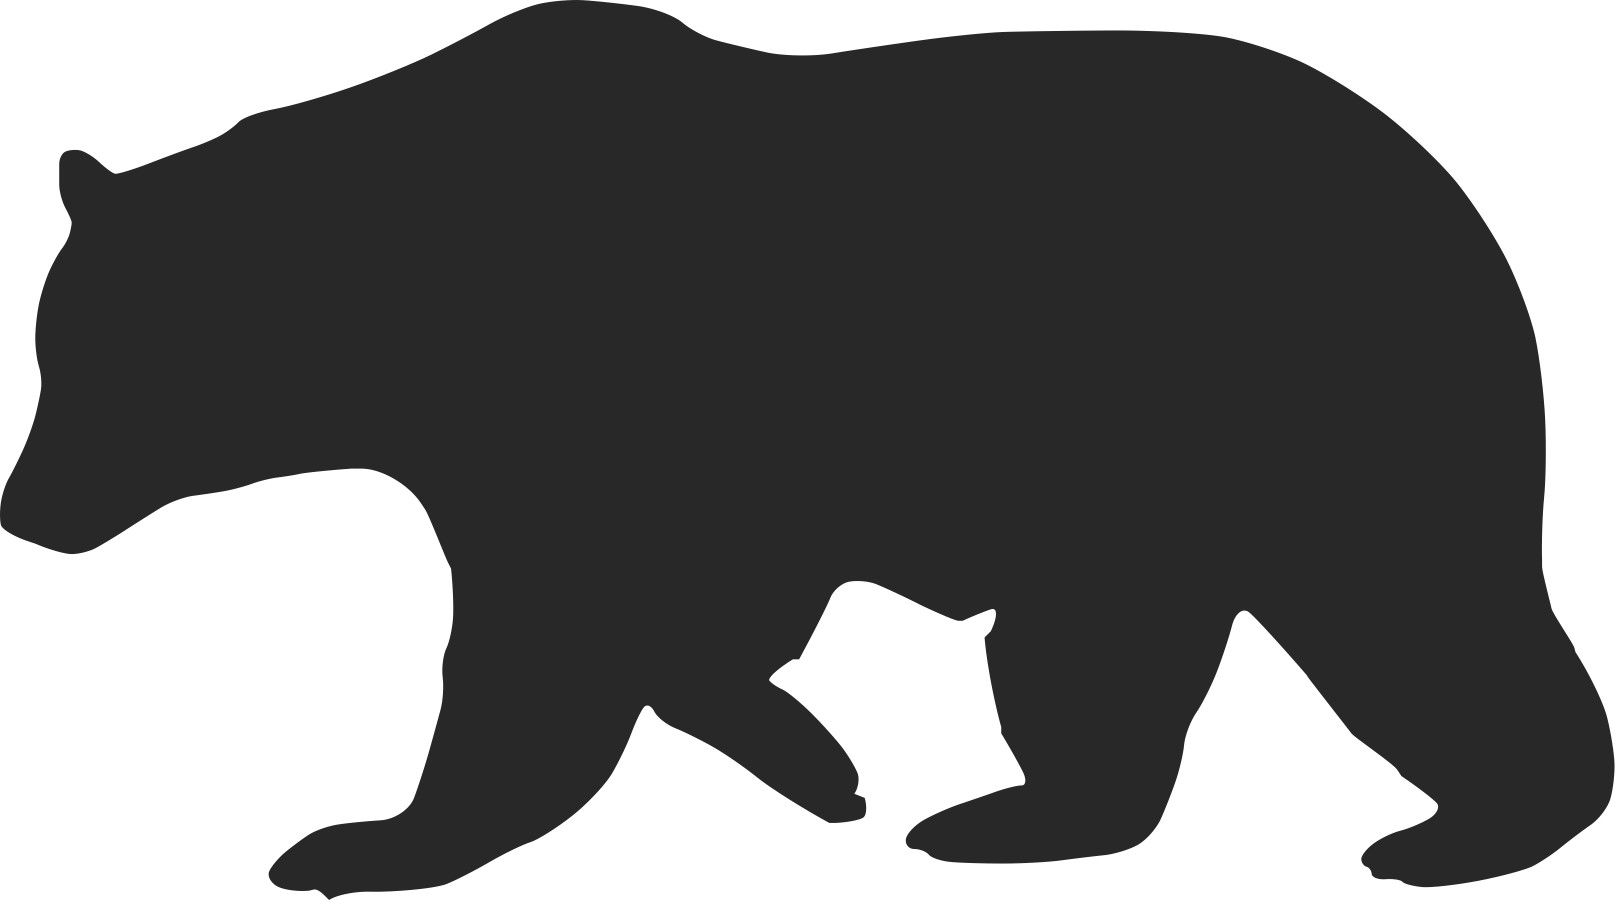 1000+ ideas about Bear Silhouette on Pinterest.